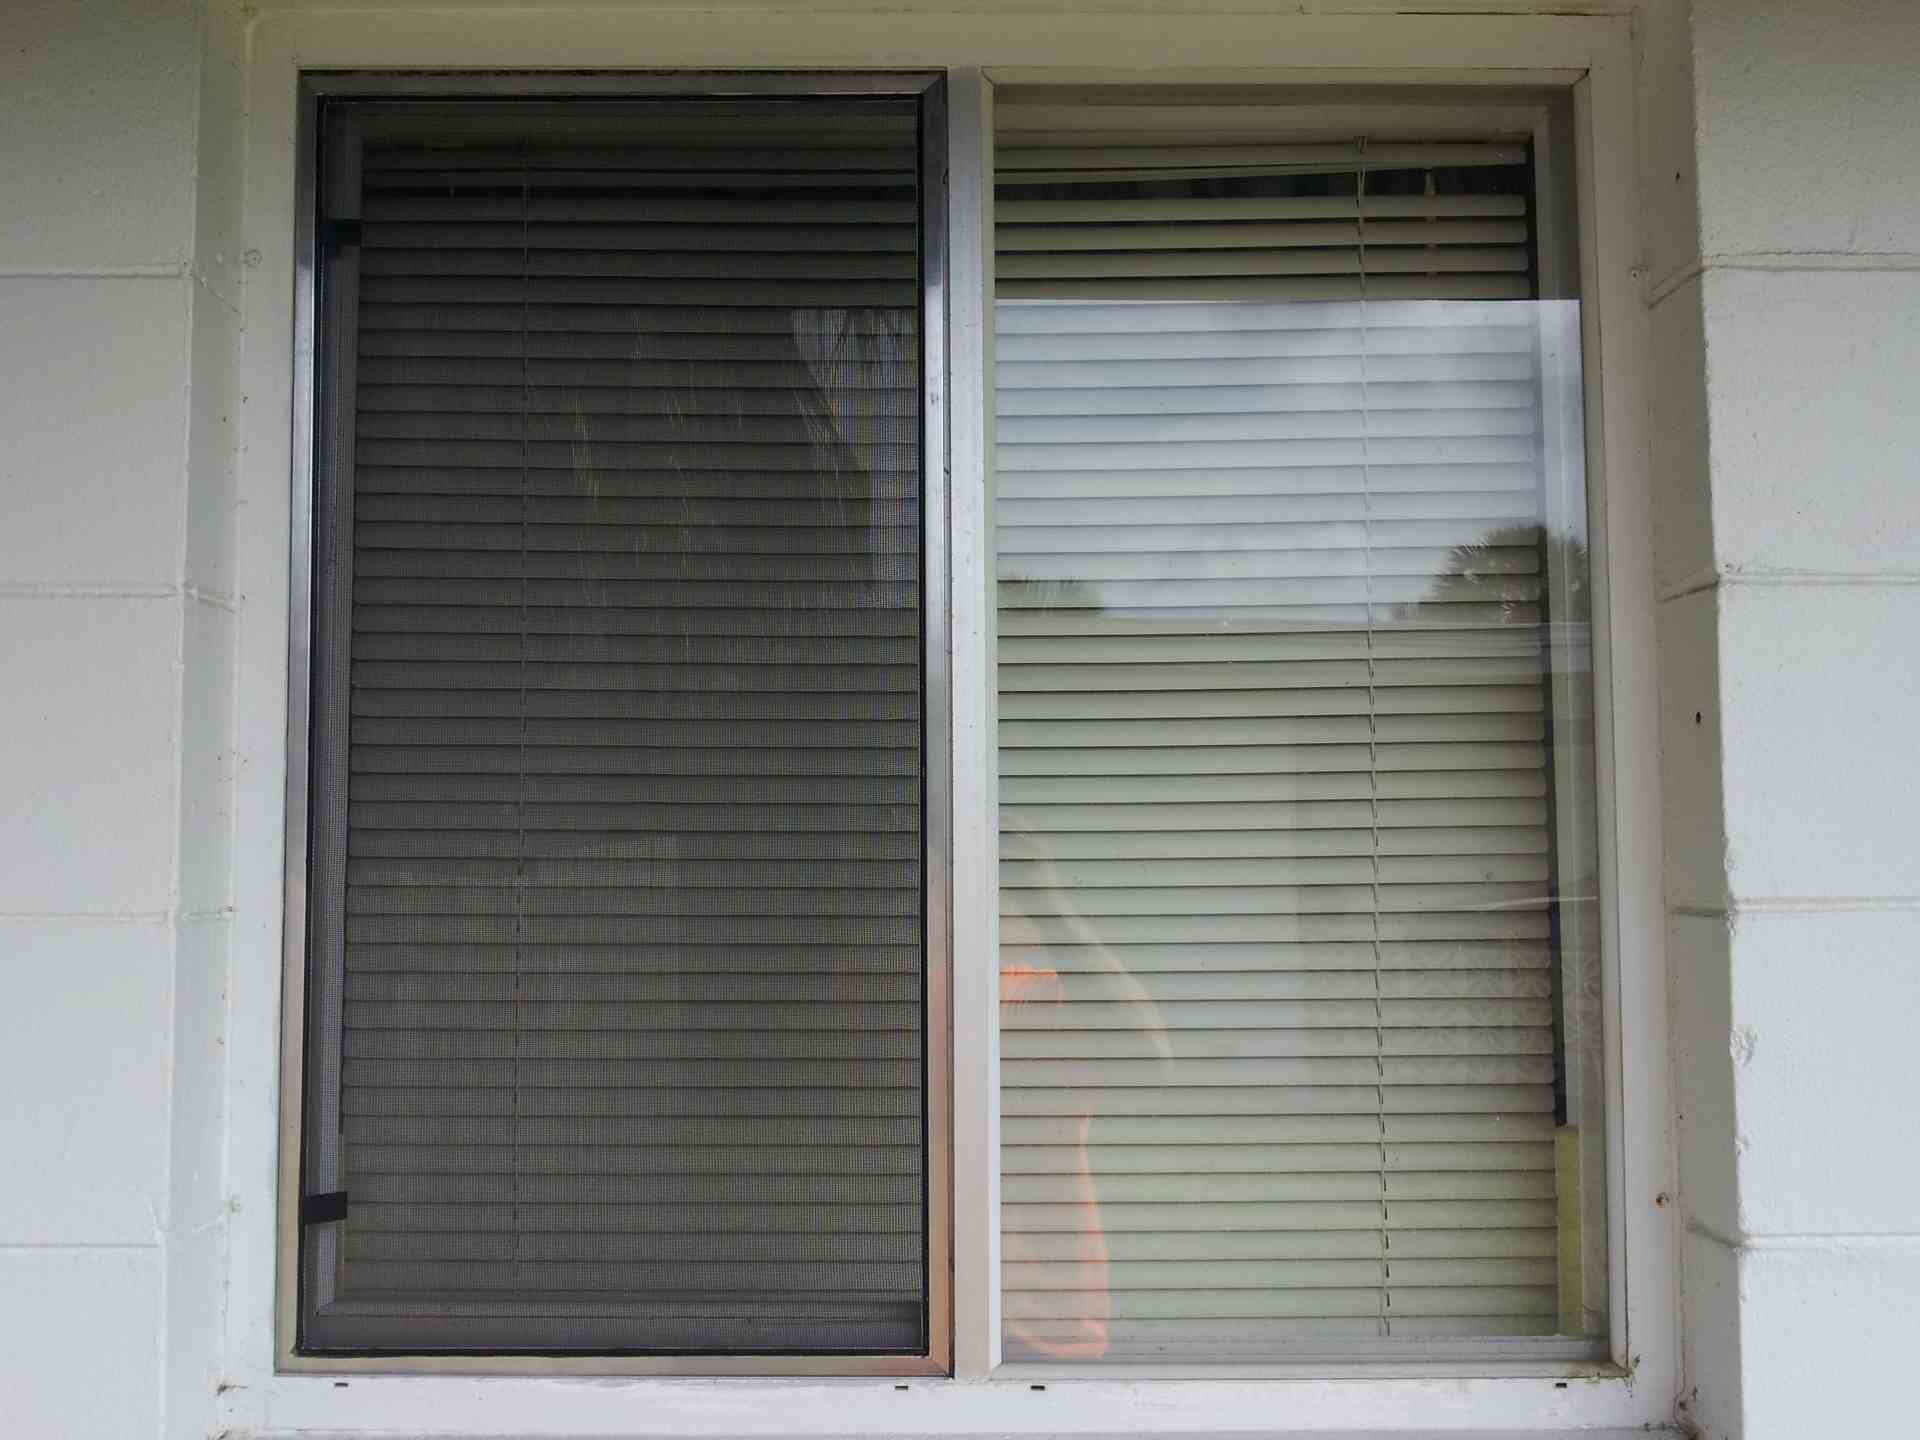 window-screen-02.jpg